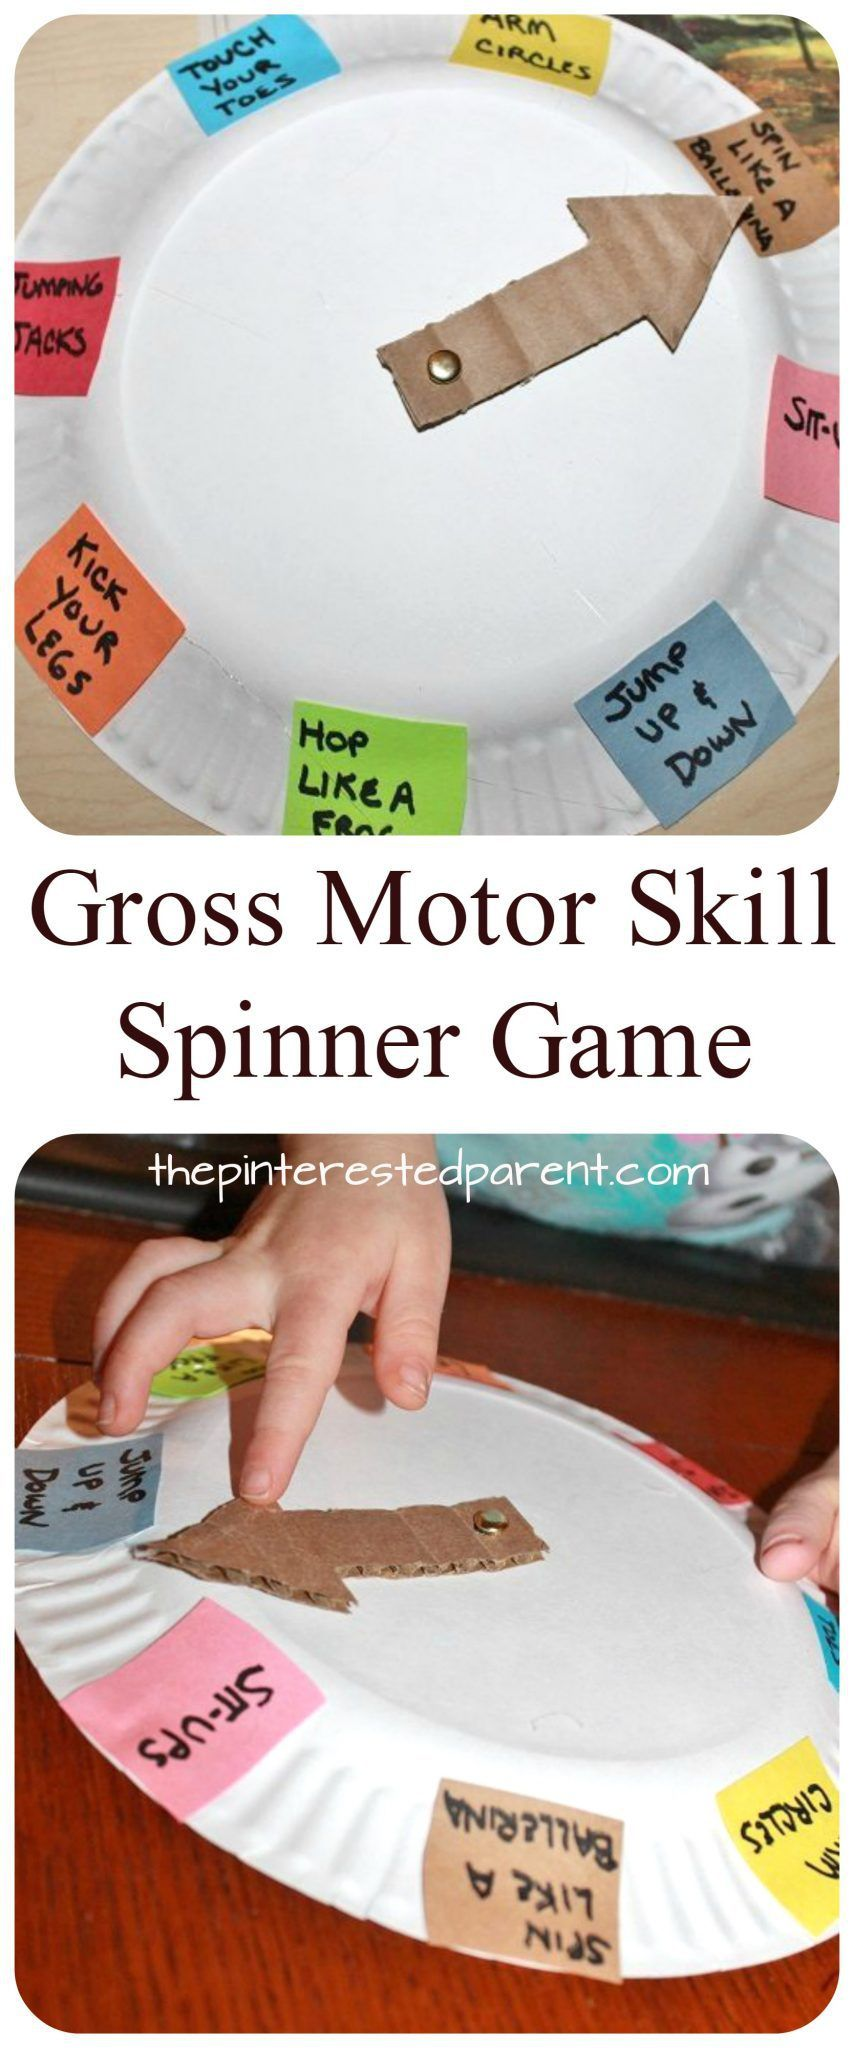 Spin Roll u0026 Count Gross Motor Skill Game - paper plate spinner game for toddlers  sc 1 st  Pinterest & Spin Roll u0026 Count Gross Motor Skill Game - paper plate spinner game ...